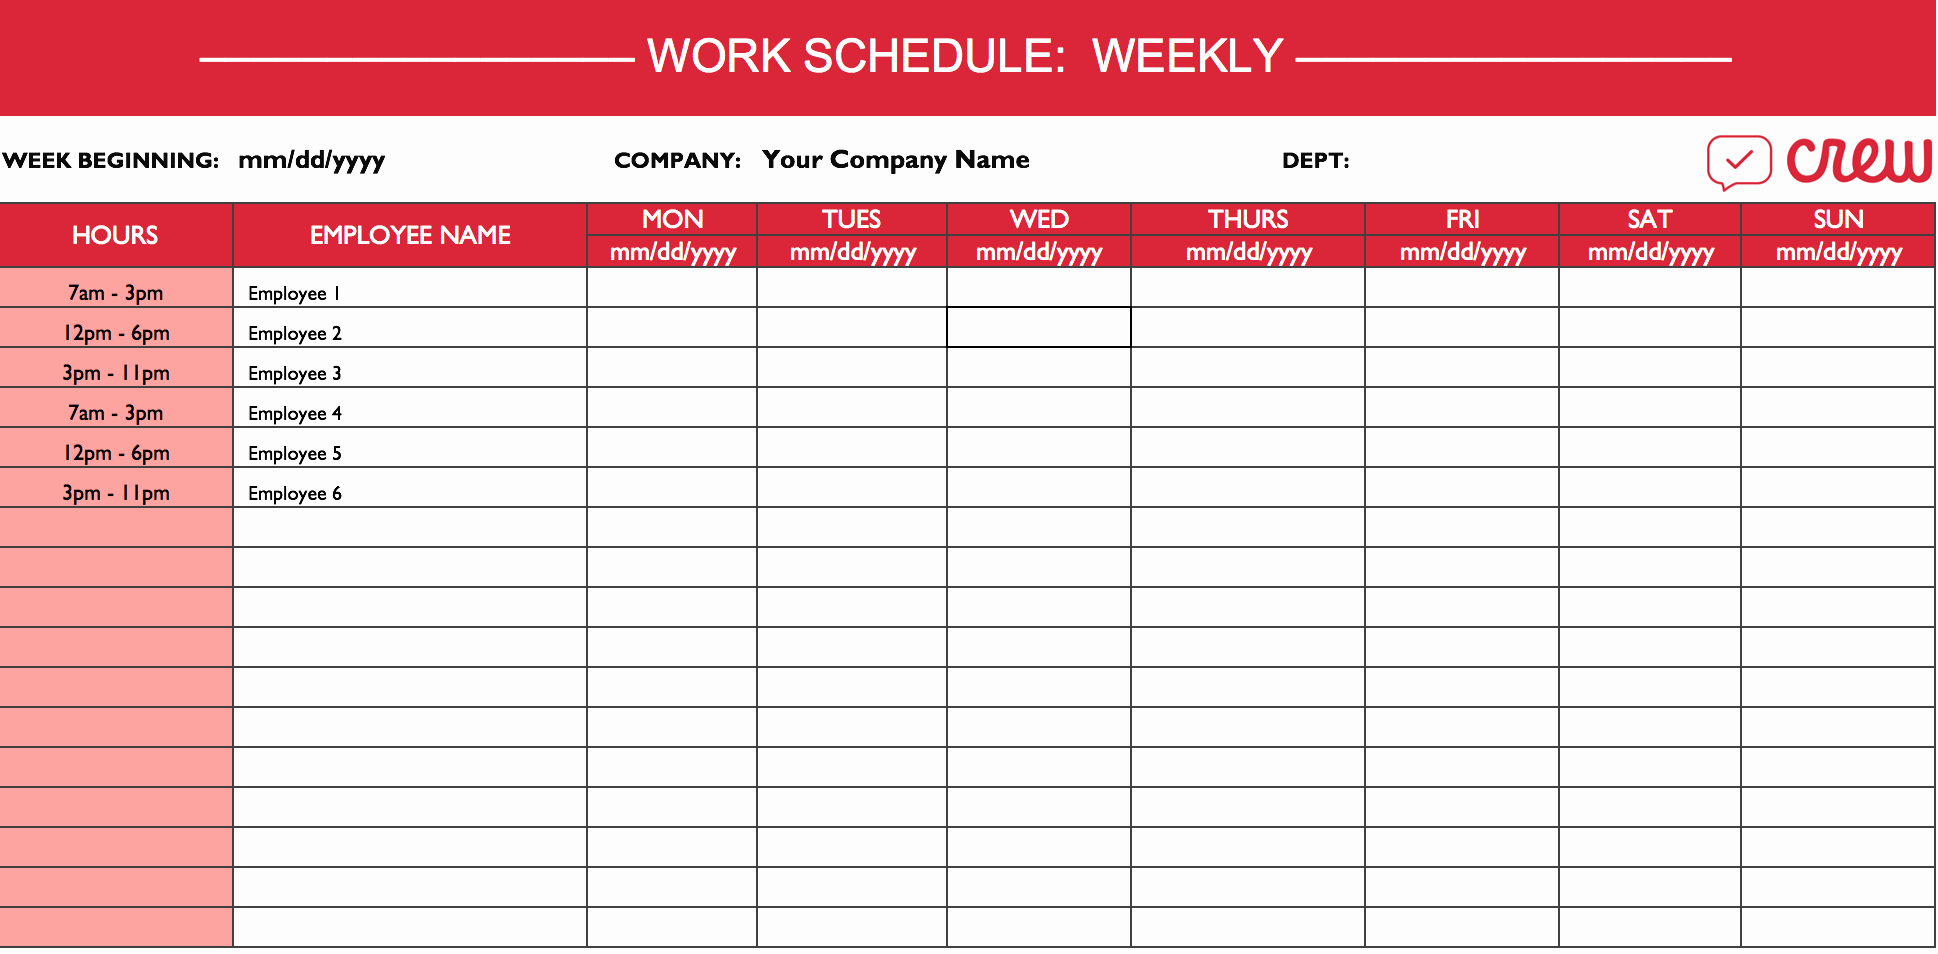 Monthly Shift Schedule Template Elegant Weekly Work Schedule Template I Crew